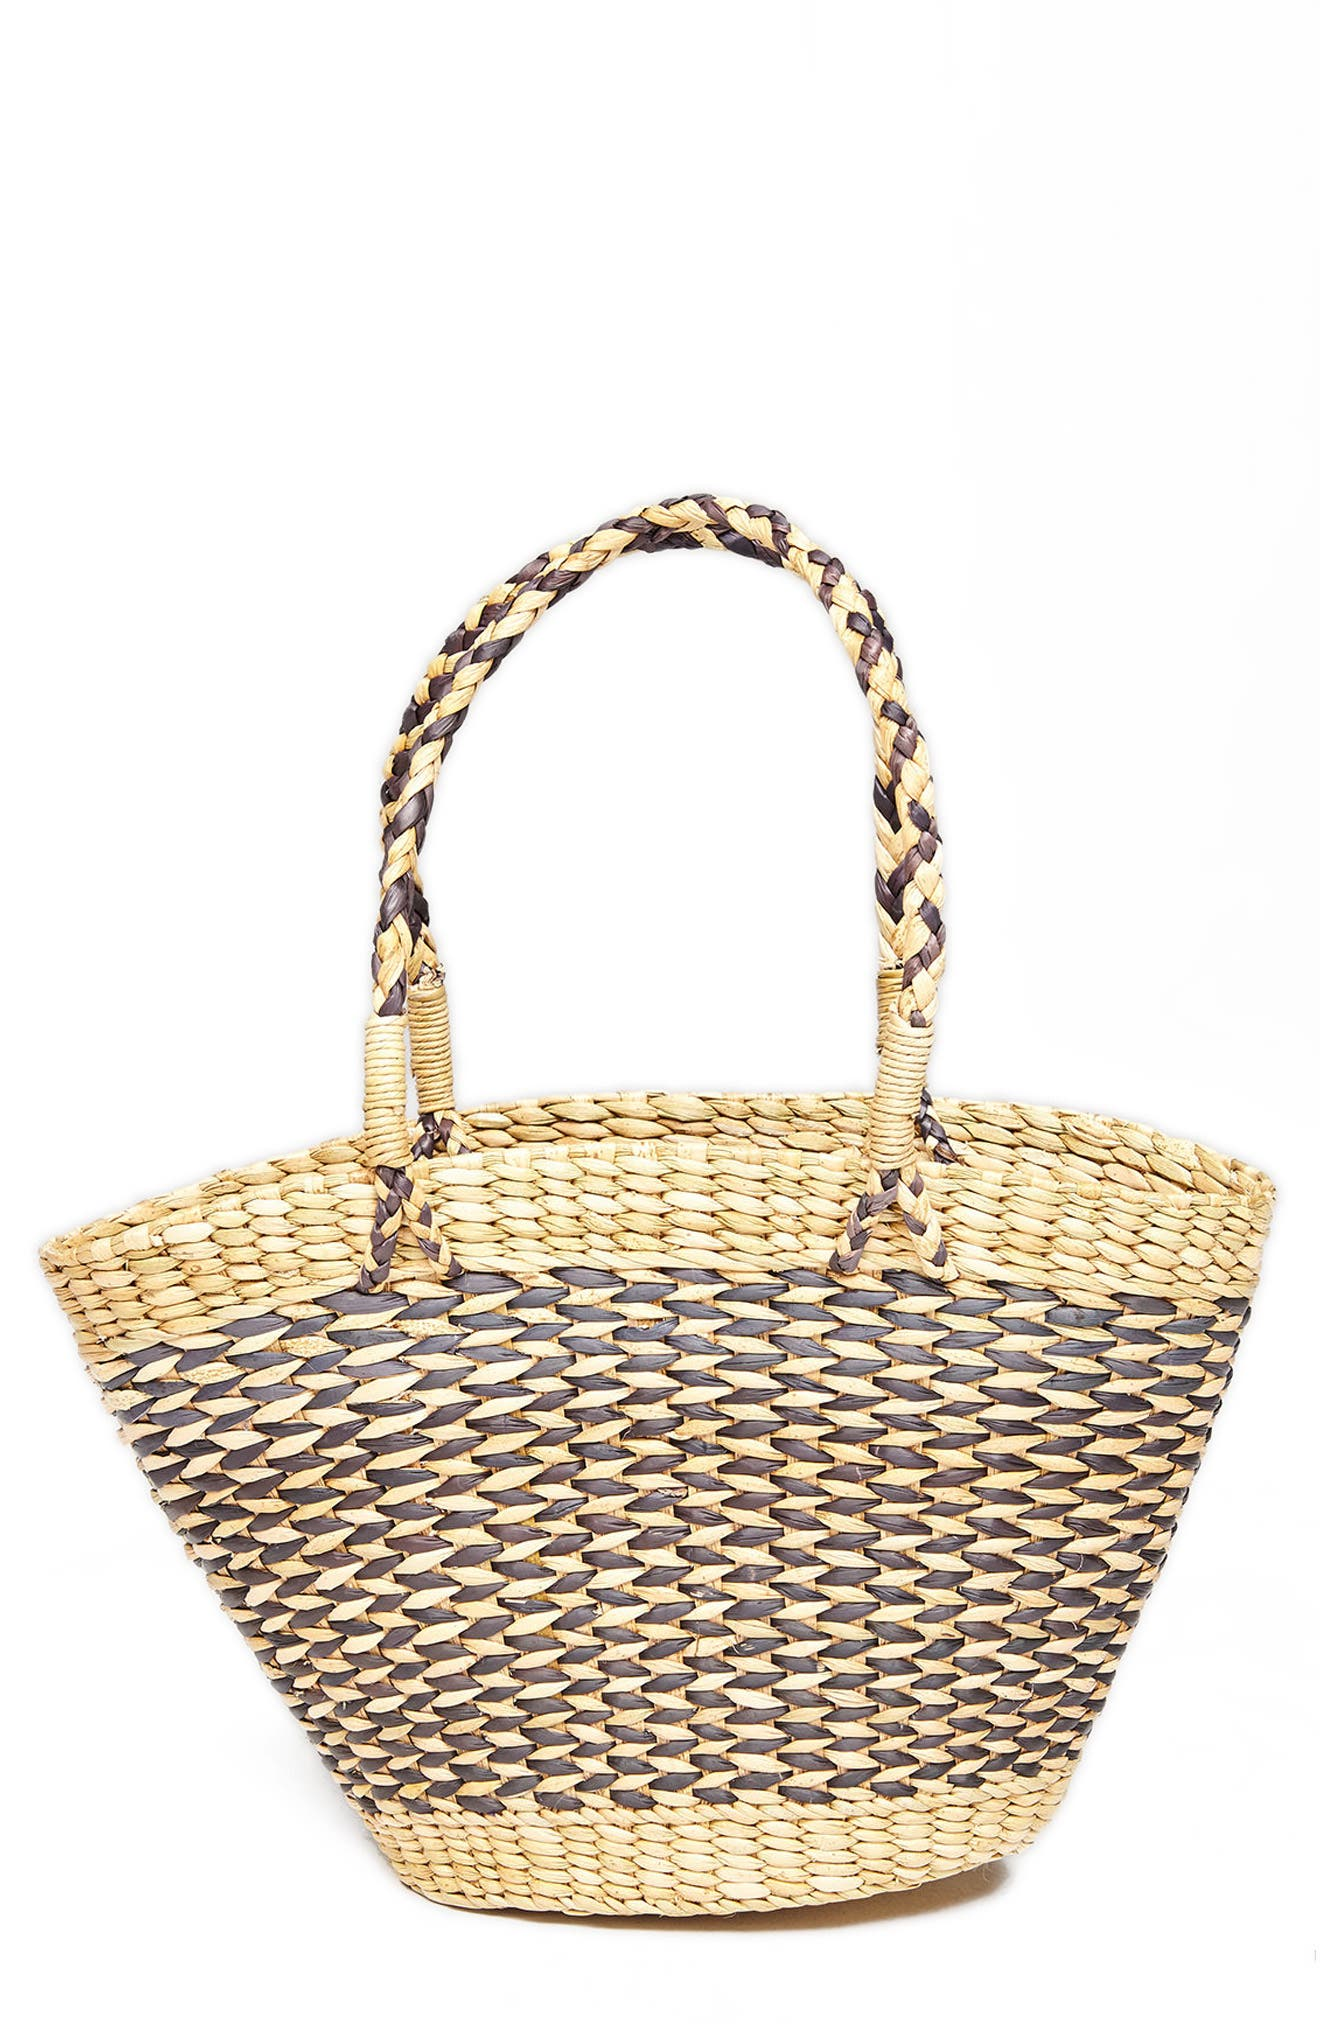 Goodie Basket Straw Tote,                         Main,                         color, 001